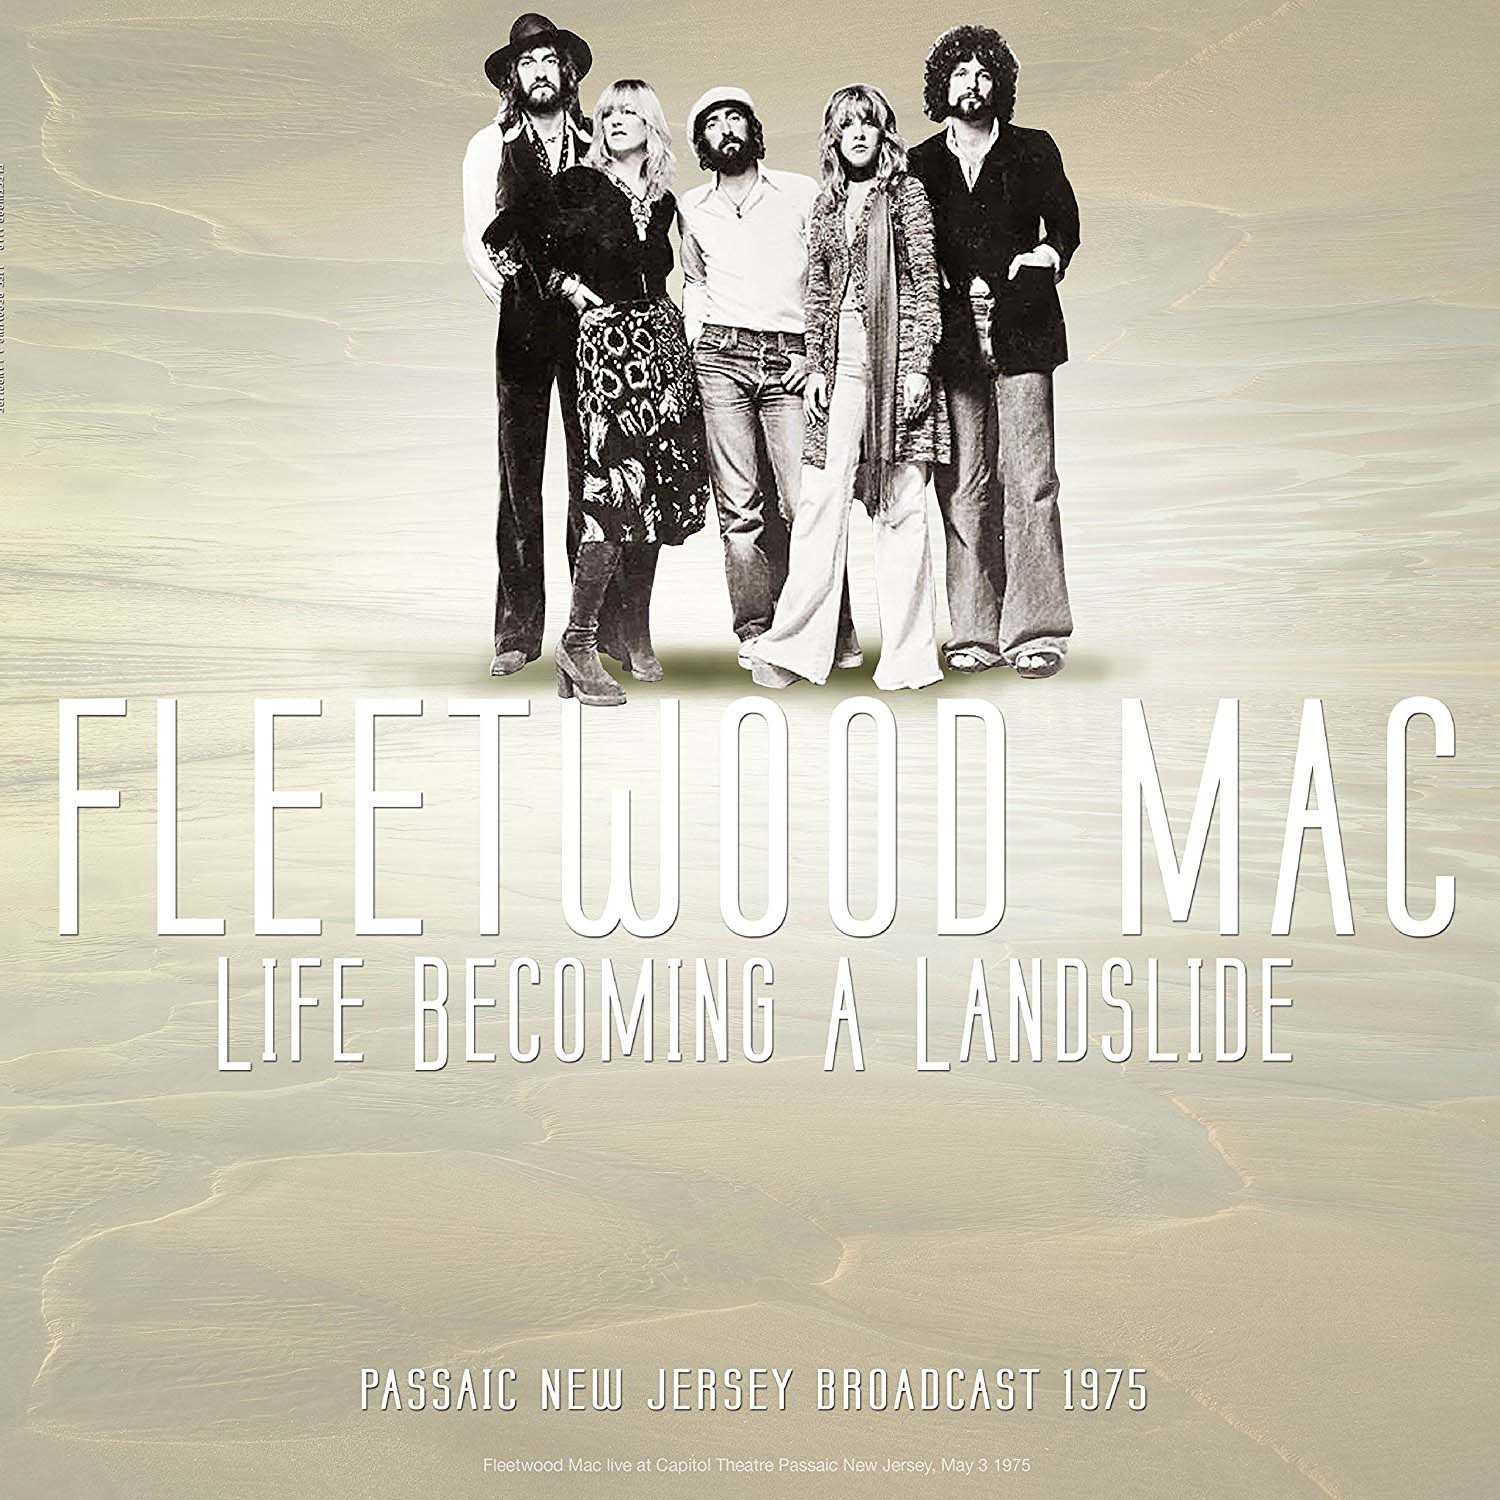 Best of Live at Life Becoming a Landslide Passaic New Jersey Broadcast 1975 - Fleetwood Mac - Musik - CULT LEGENDS - 8717662574320 - 1970